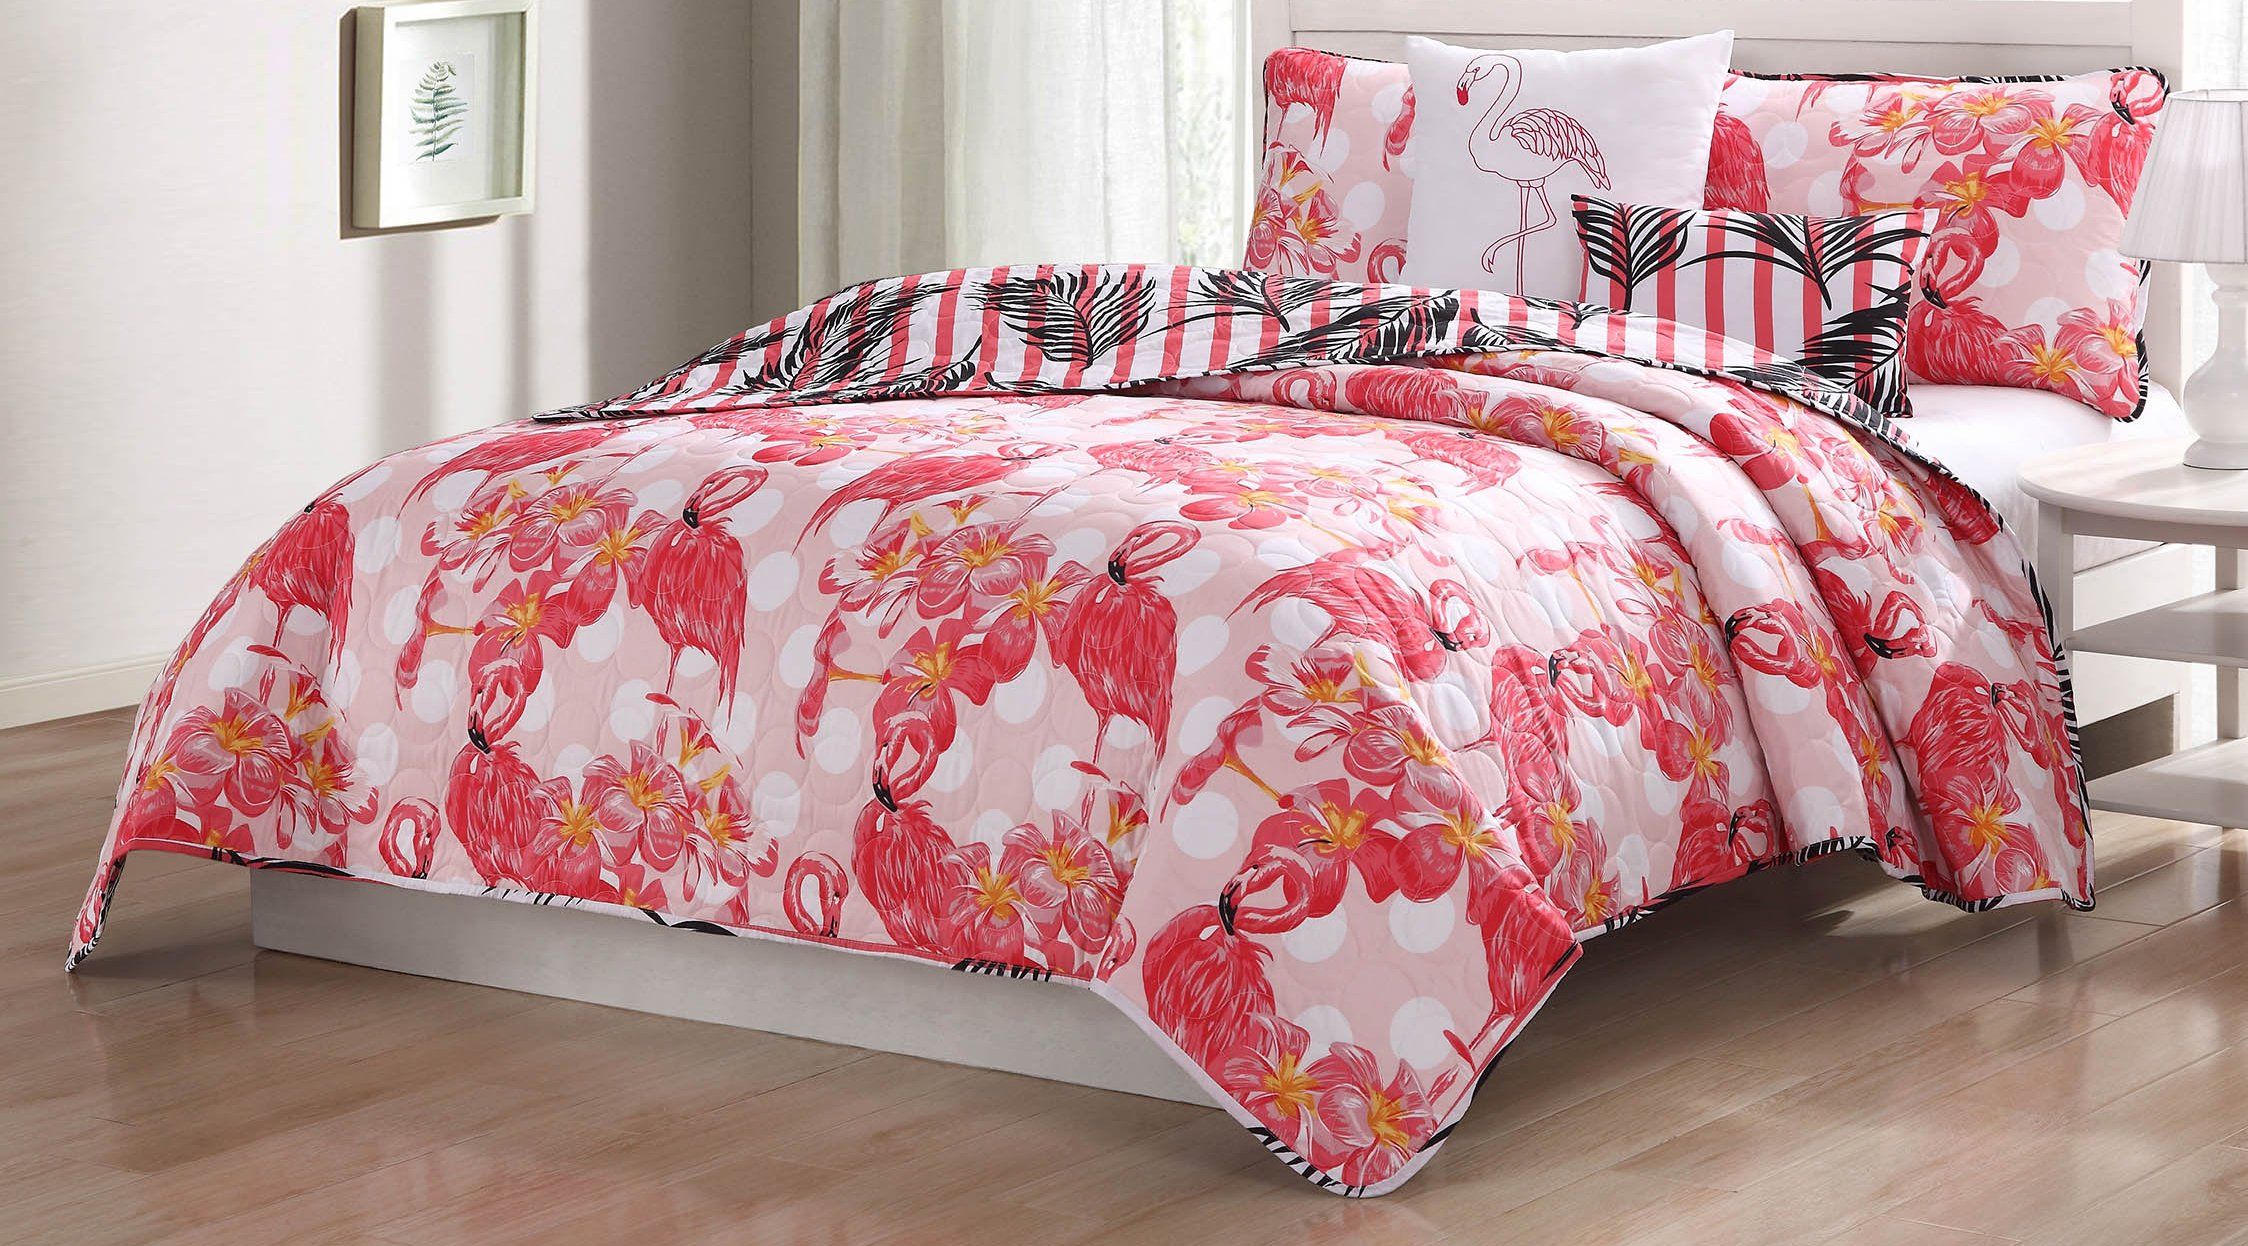 Quaint Home Flamingo 5-Piece King Quilt Set, Pink/Orange/White